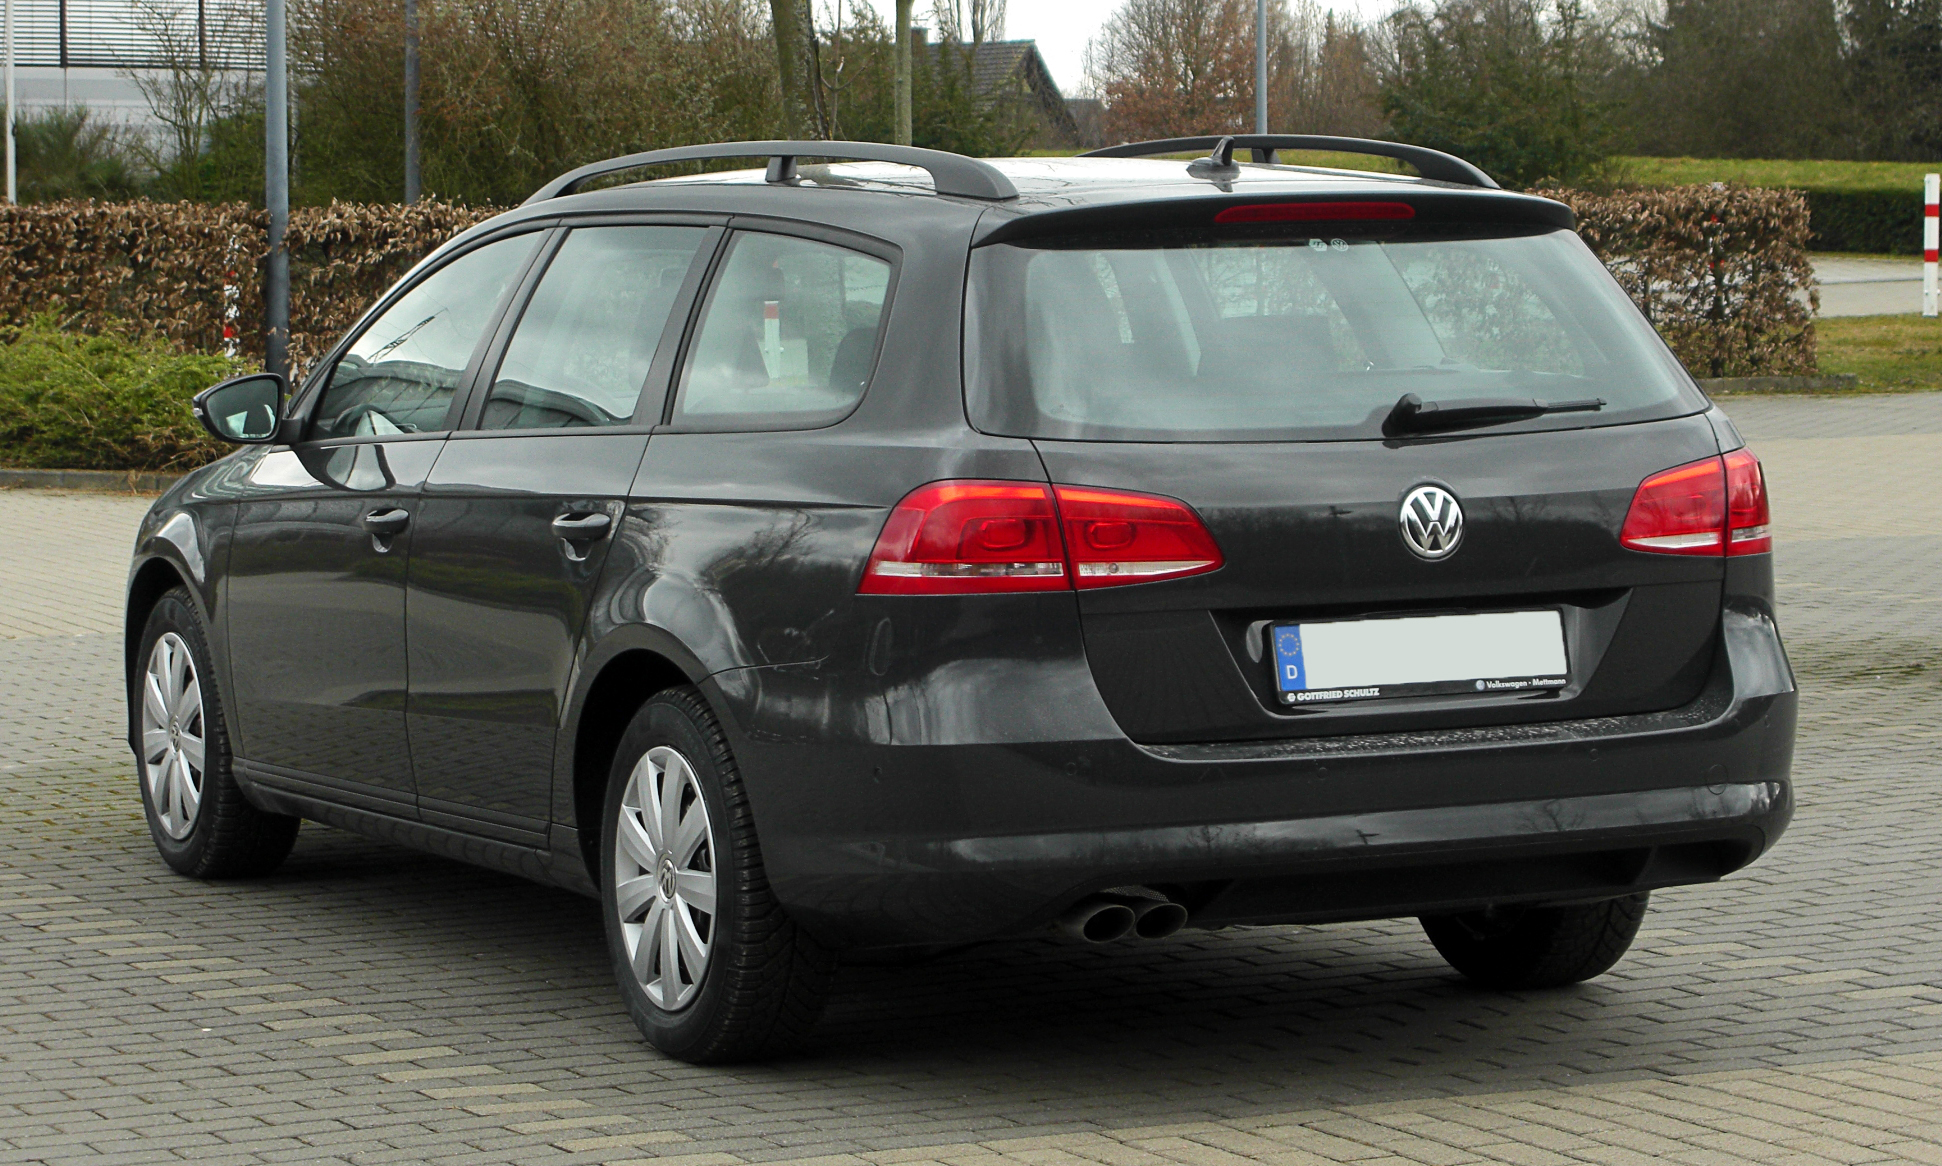 2011 volkswagen passat variant b7 pictures. Black Bedroom Furniture Sets. Home Design Ideas